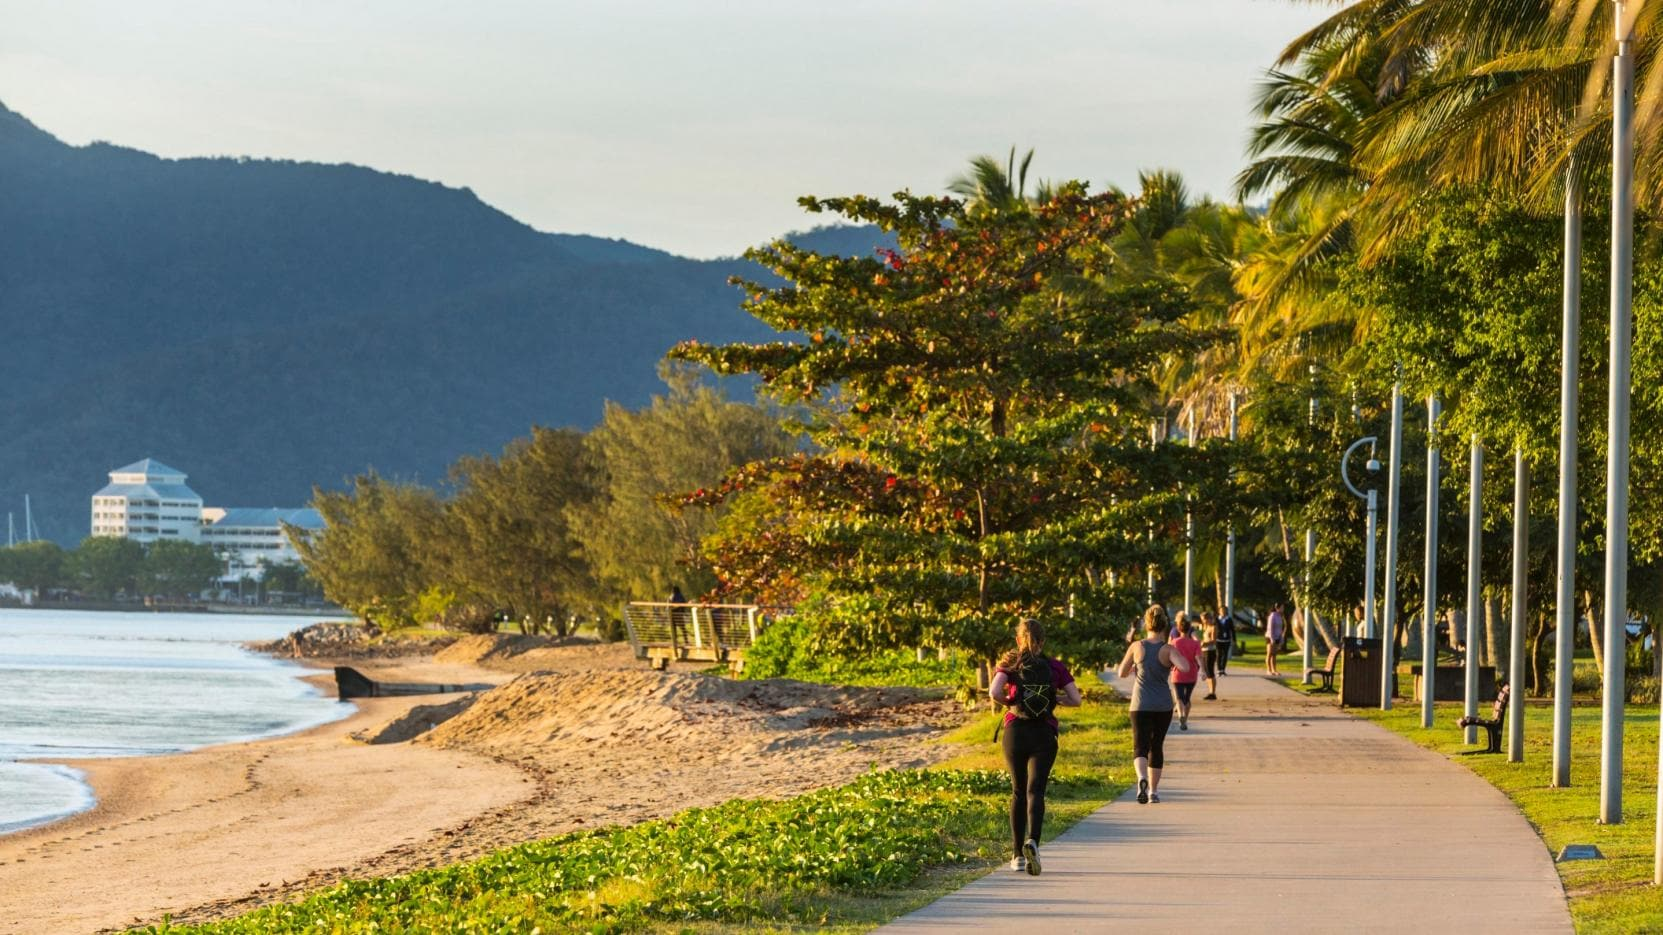 Esplanade, Cairns, QLD © Andrew Watson, Tourism & Events Queensland